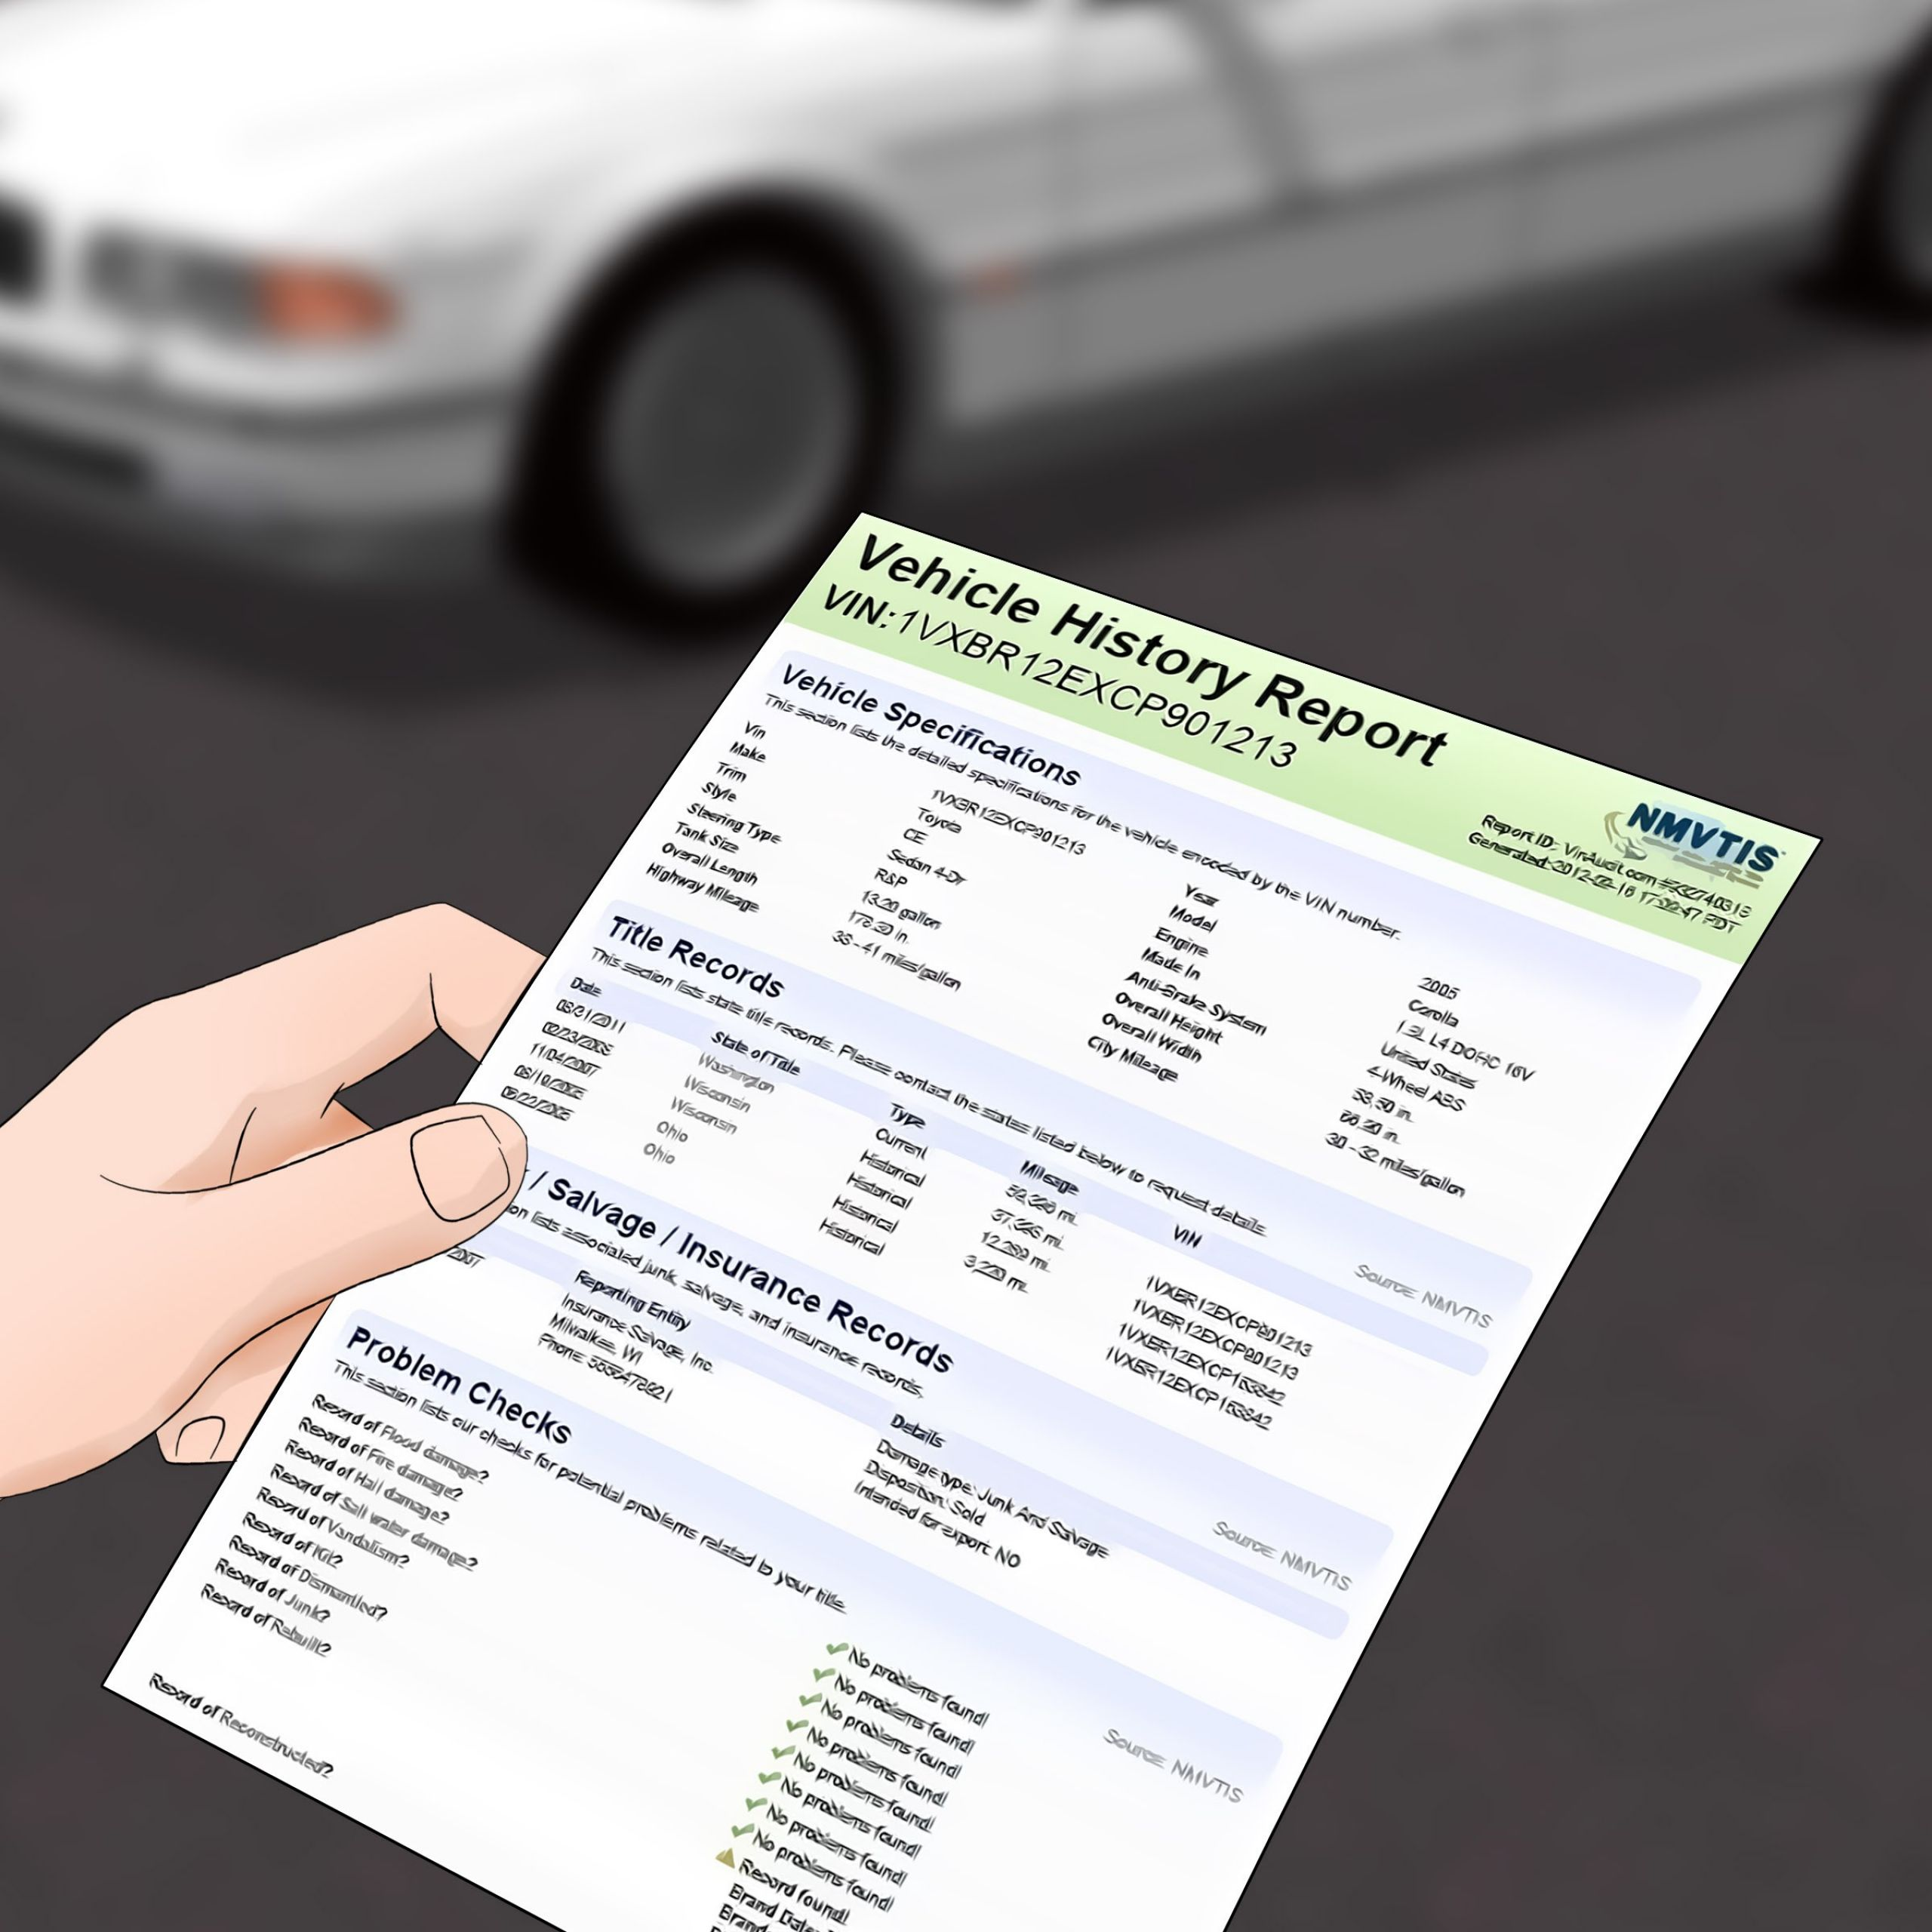 Carfax Accident Report Fresh How to Check Cars for Accident Damage 10 Steps with